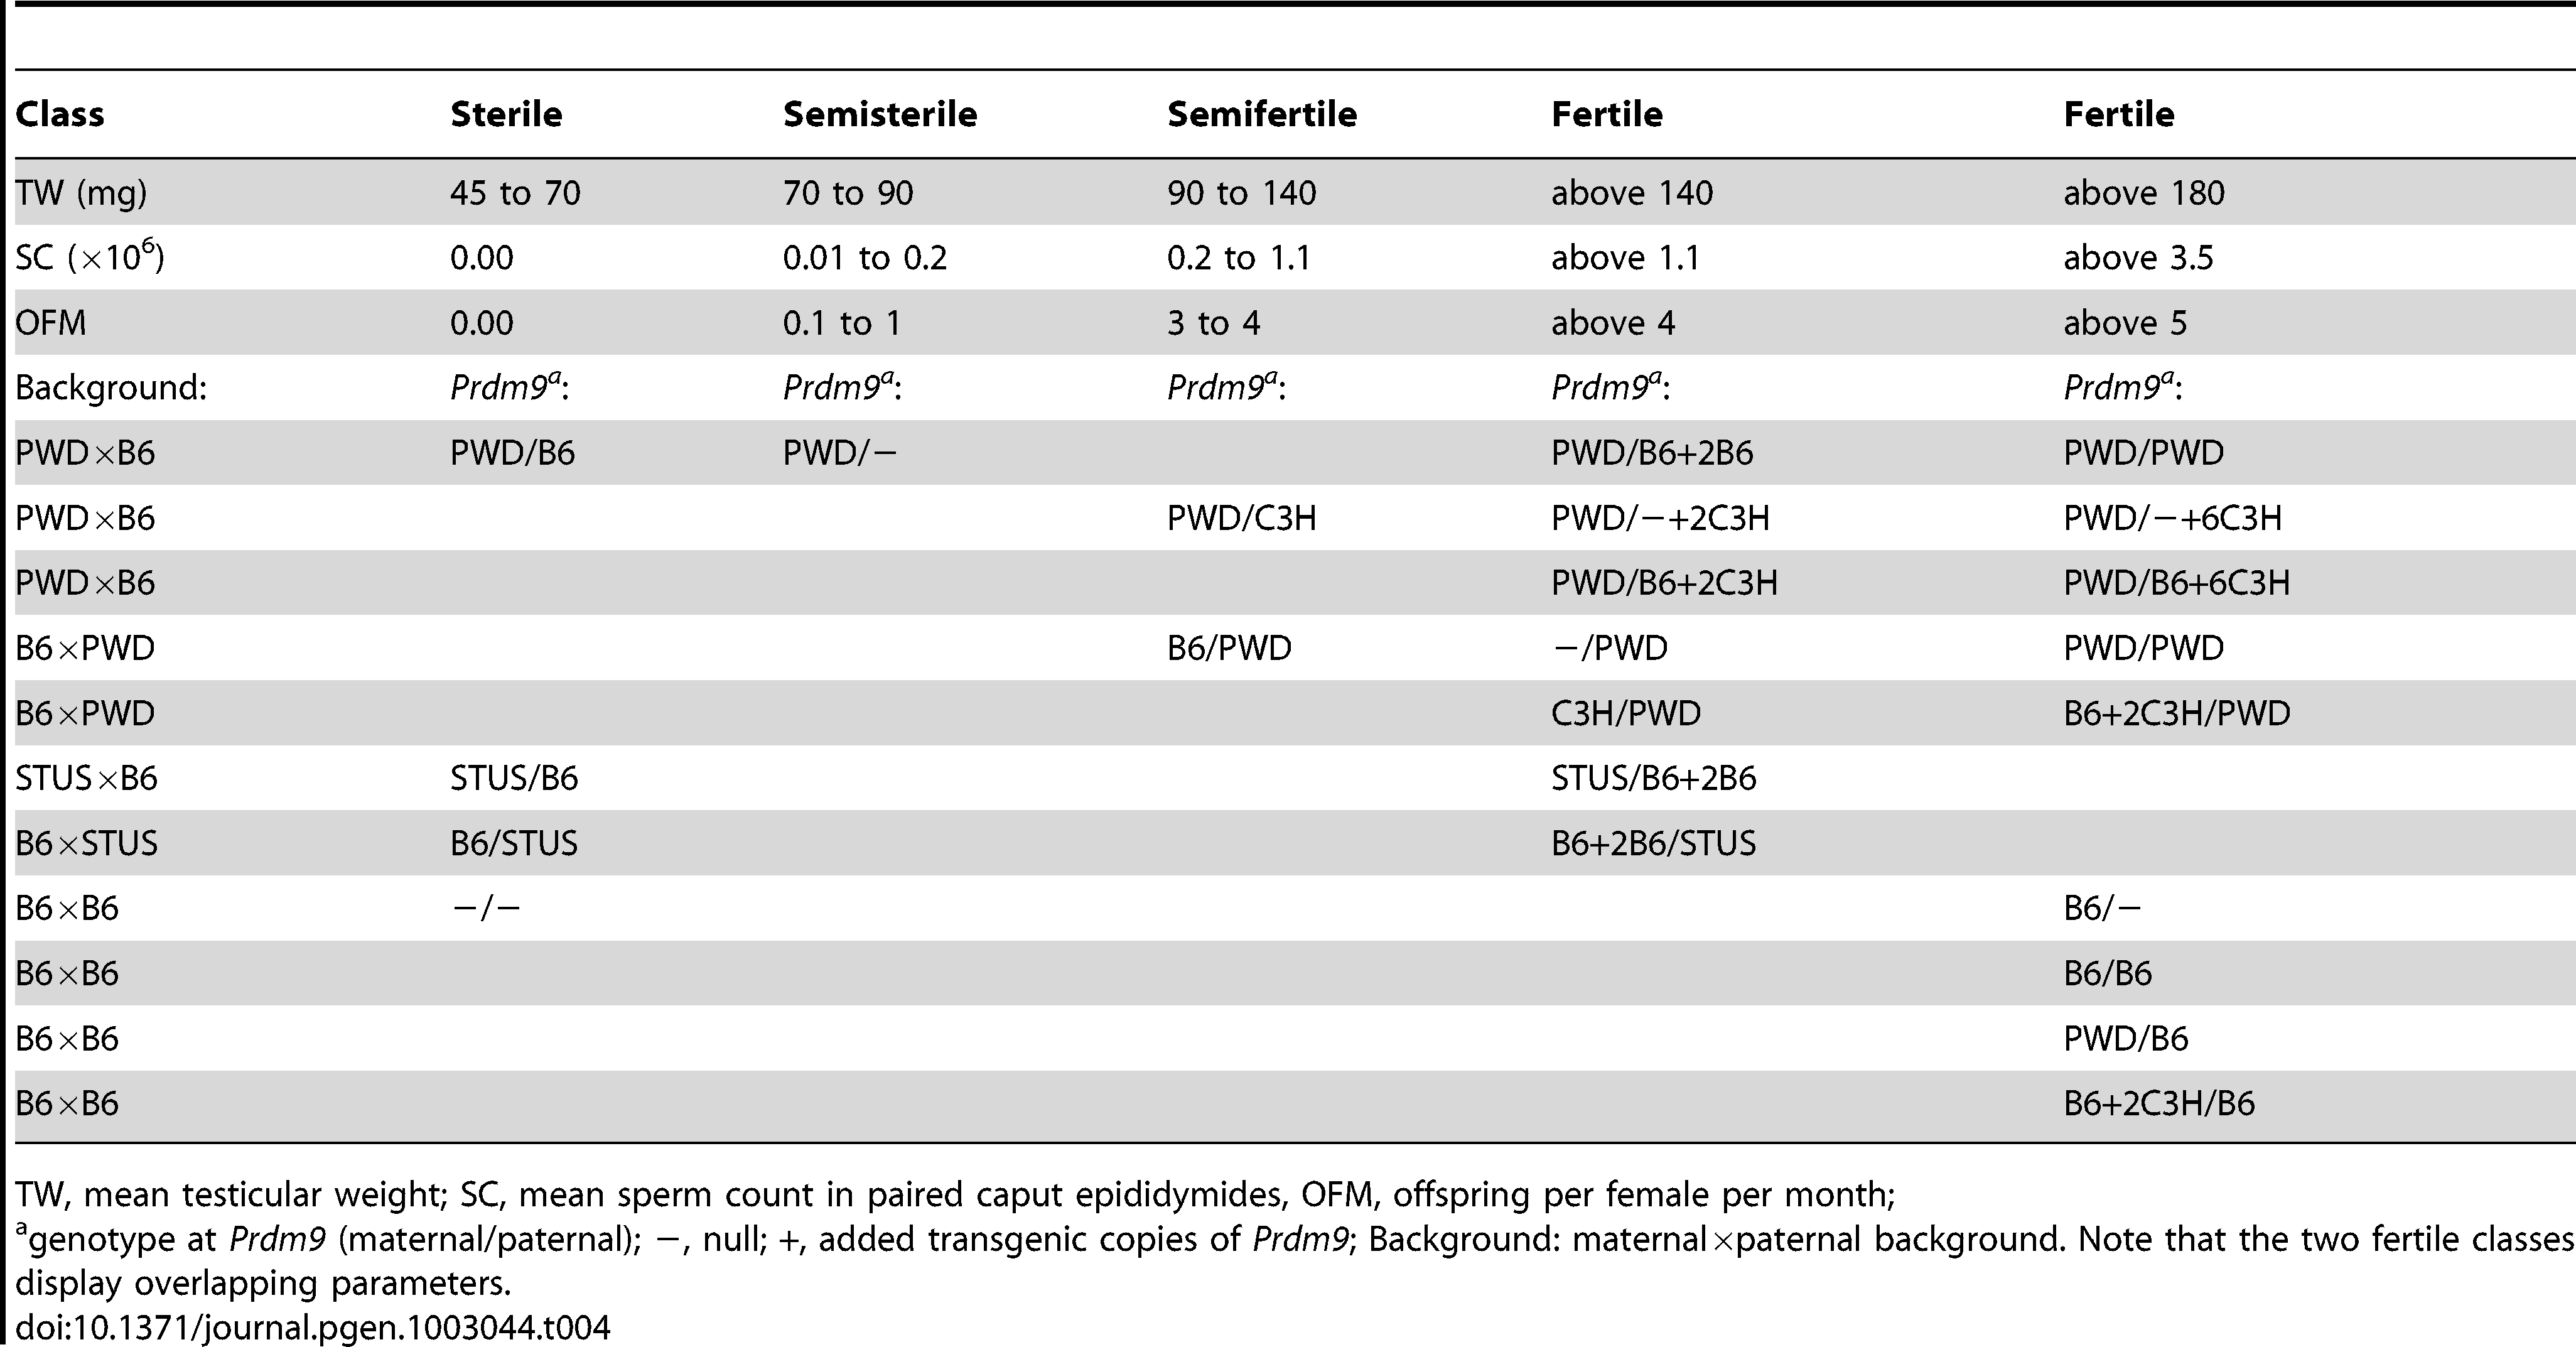 Males differing by the <i>Prdm9</i> allele, its dosage, or background divided into classes according to fertility.